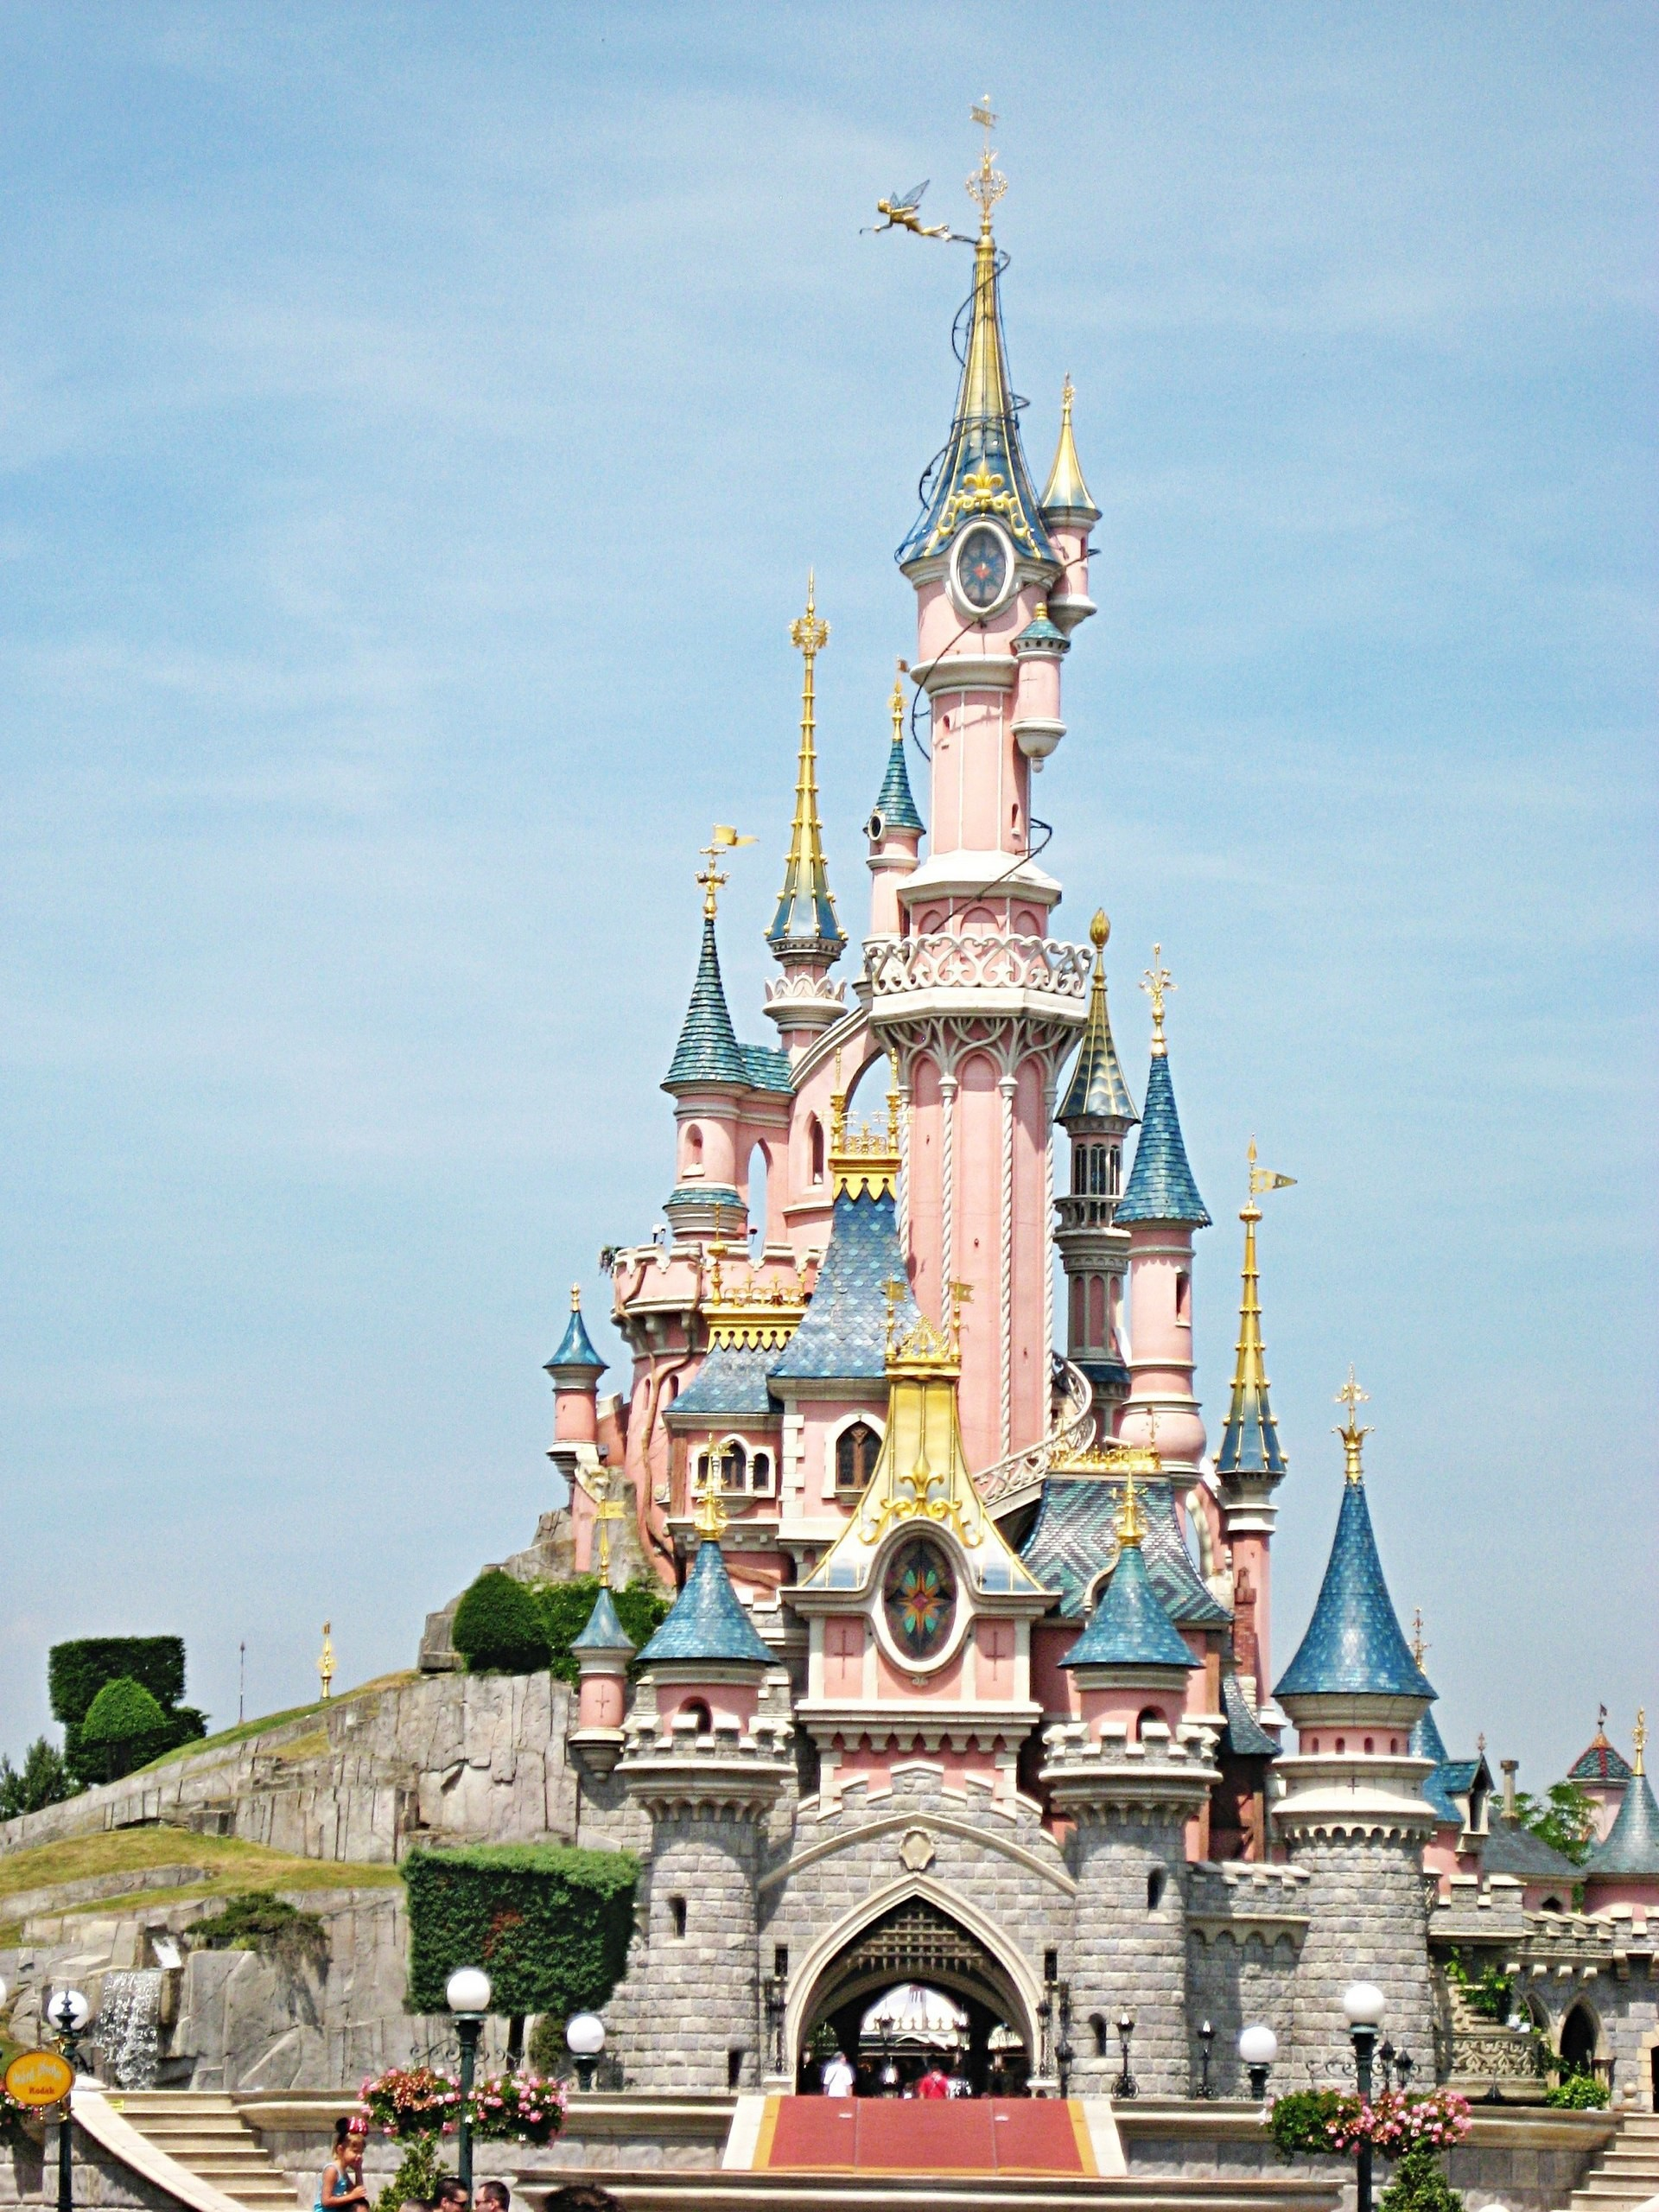 1920x2560 Disney Princess images The Sleeping Beauty Castle @ Disneyland, Paris HD  wallpaper and background photos